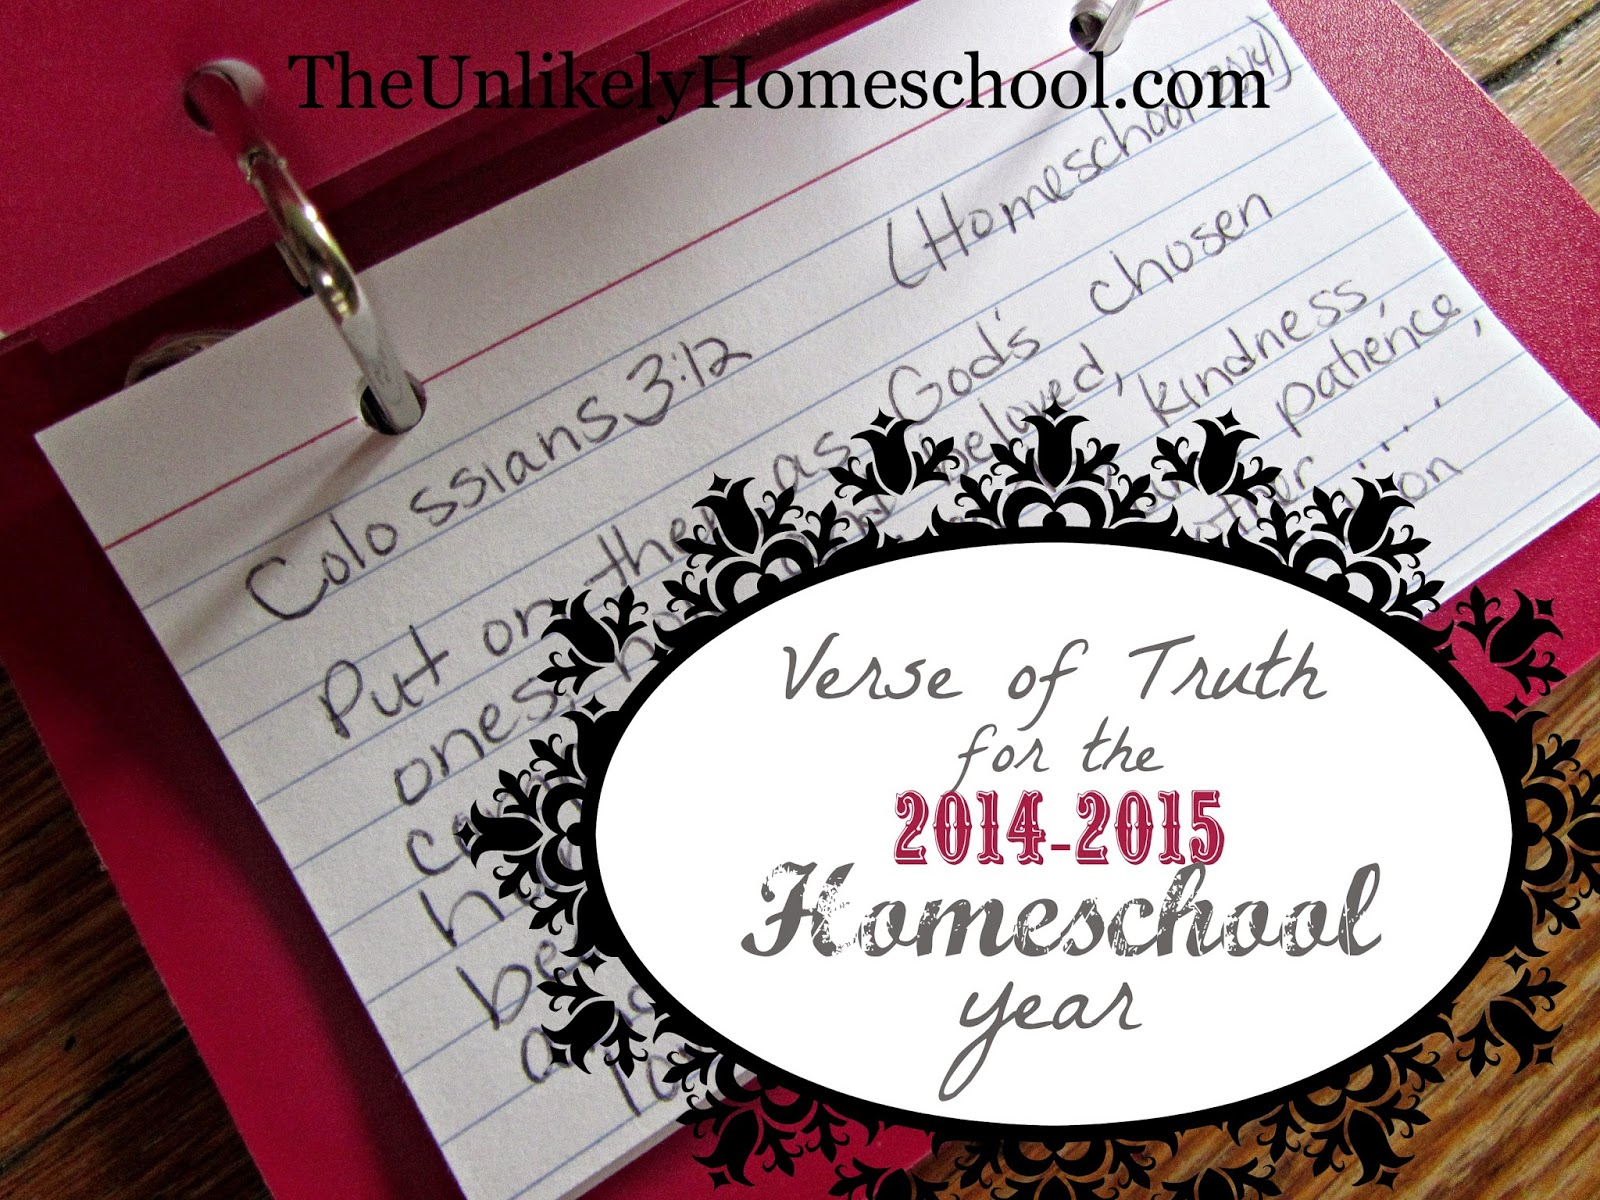 Verse of Truth for the 2014-2015 Homeschool Year {The Unlikely Homeschool}